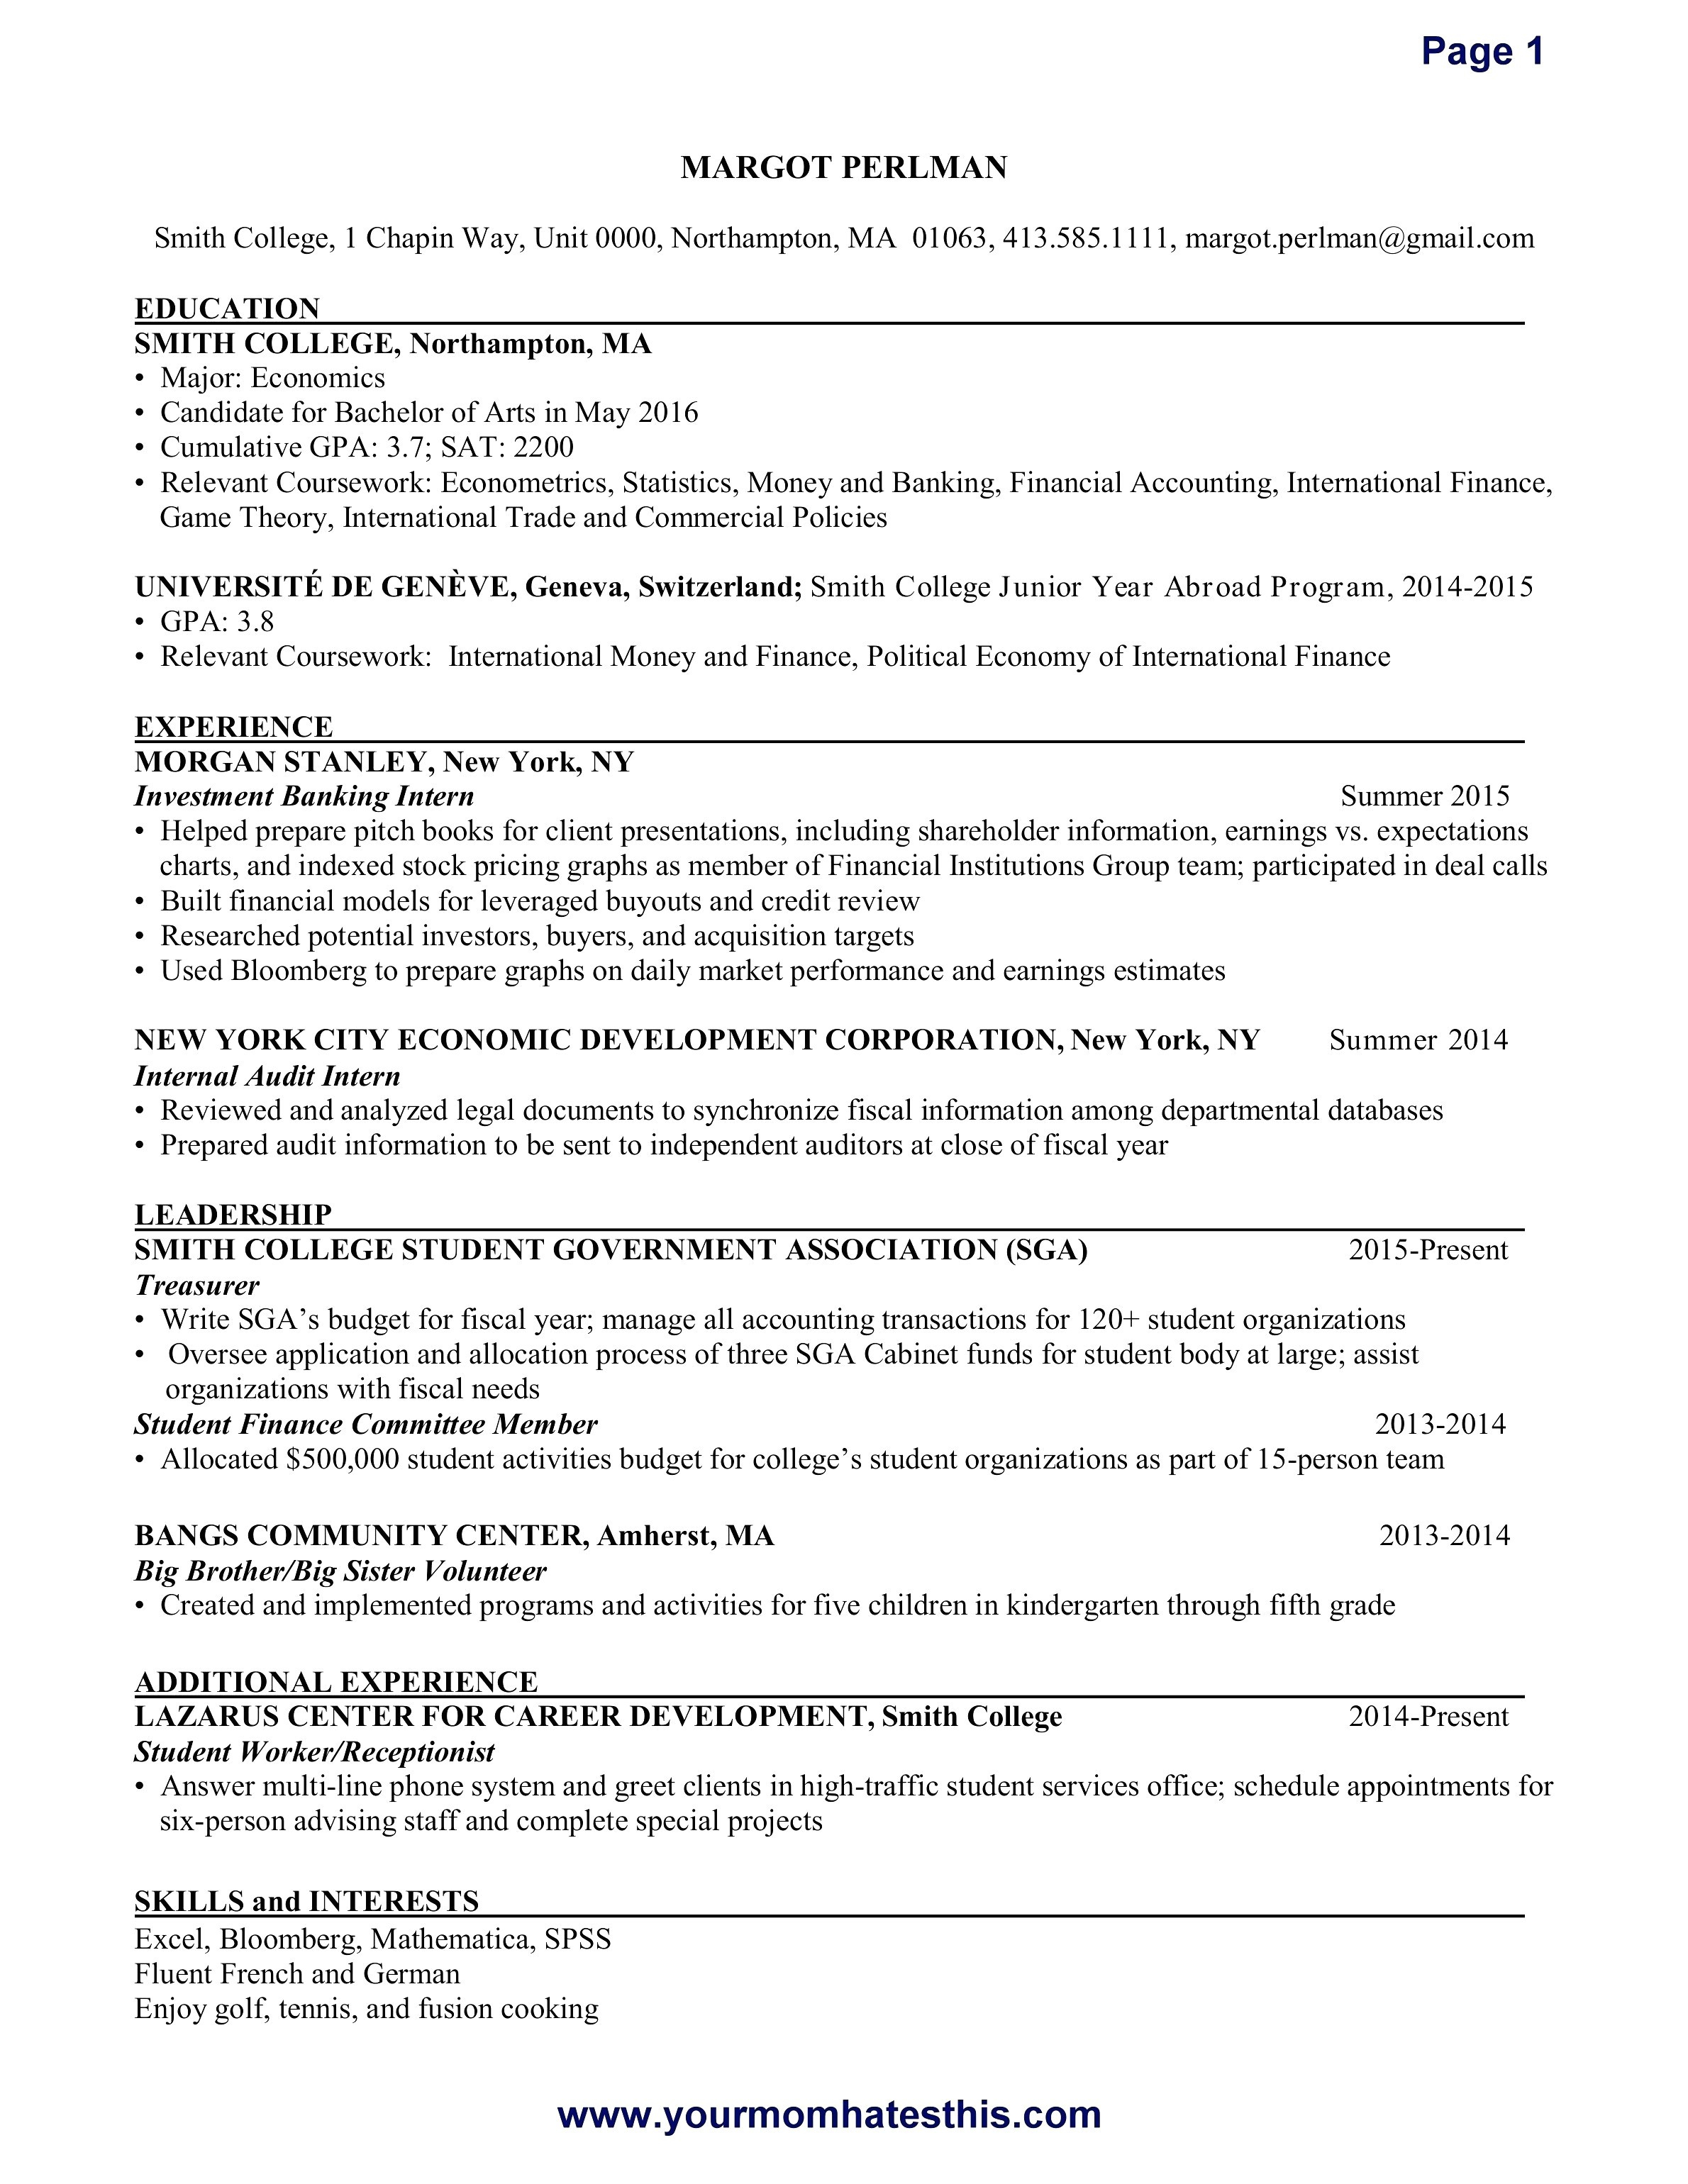 Social Media Marketing Resume - Marketing Resume Samples New 59 Inspirational Nursing Resume